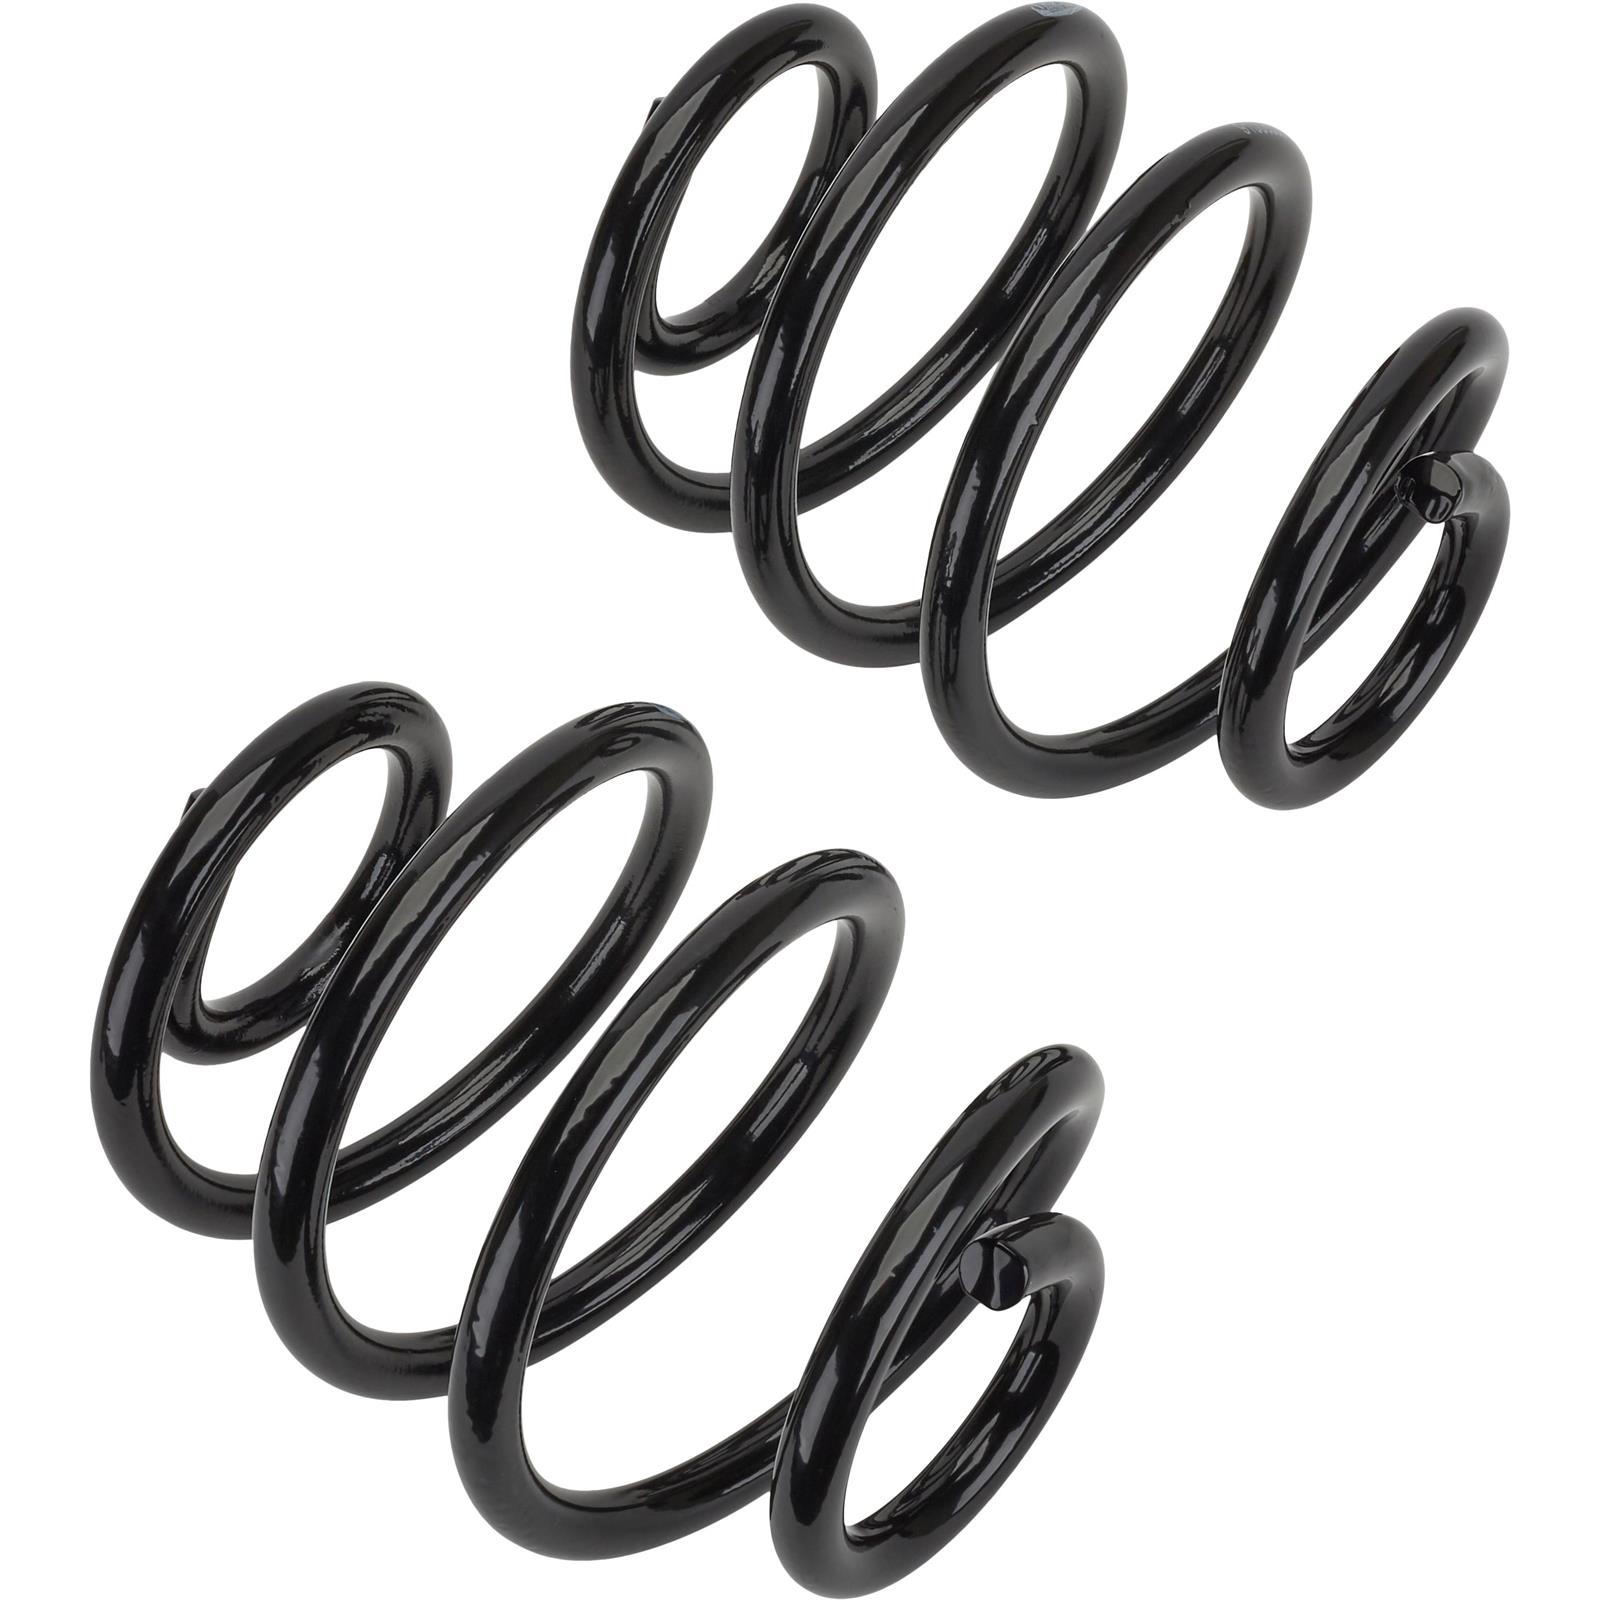 Rear Springs 1960-72 Fits Chevy Truck 4 In Drop//1967-72 Chevelle 2 In Drop